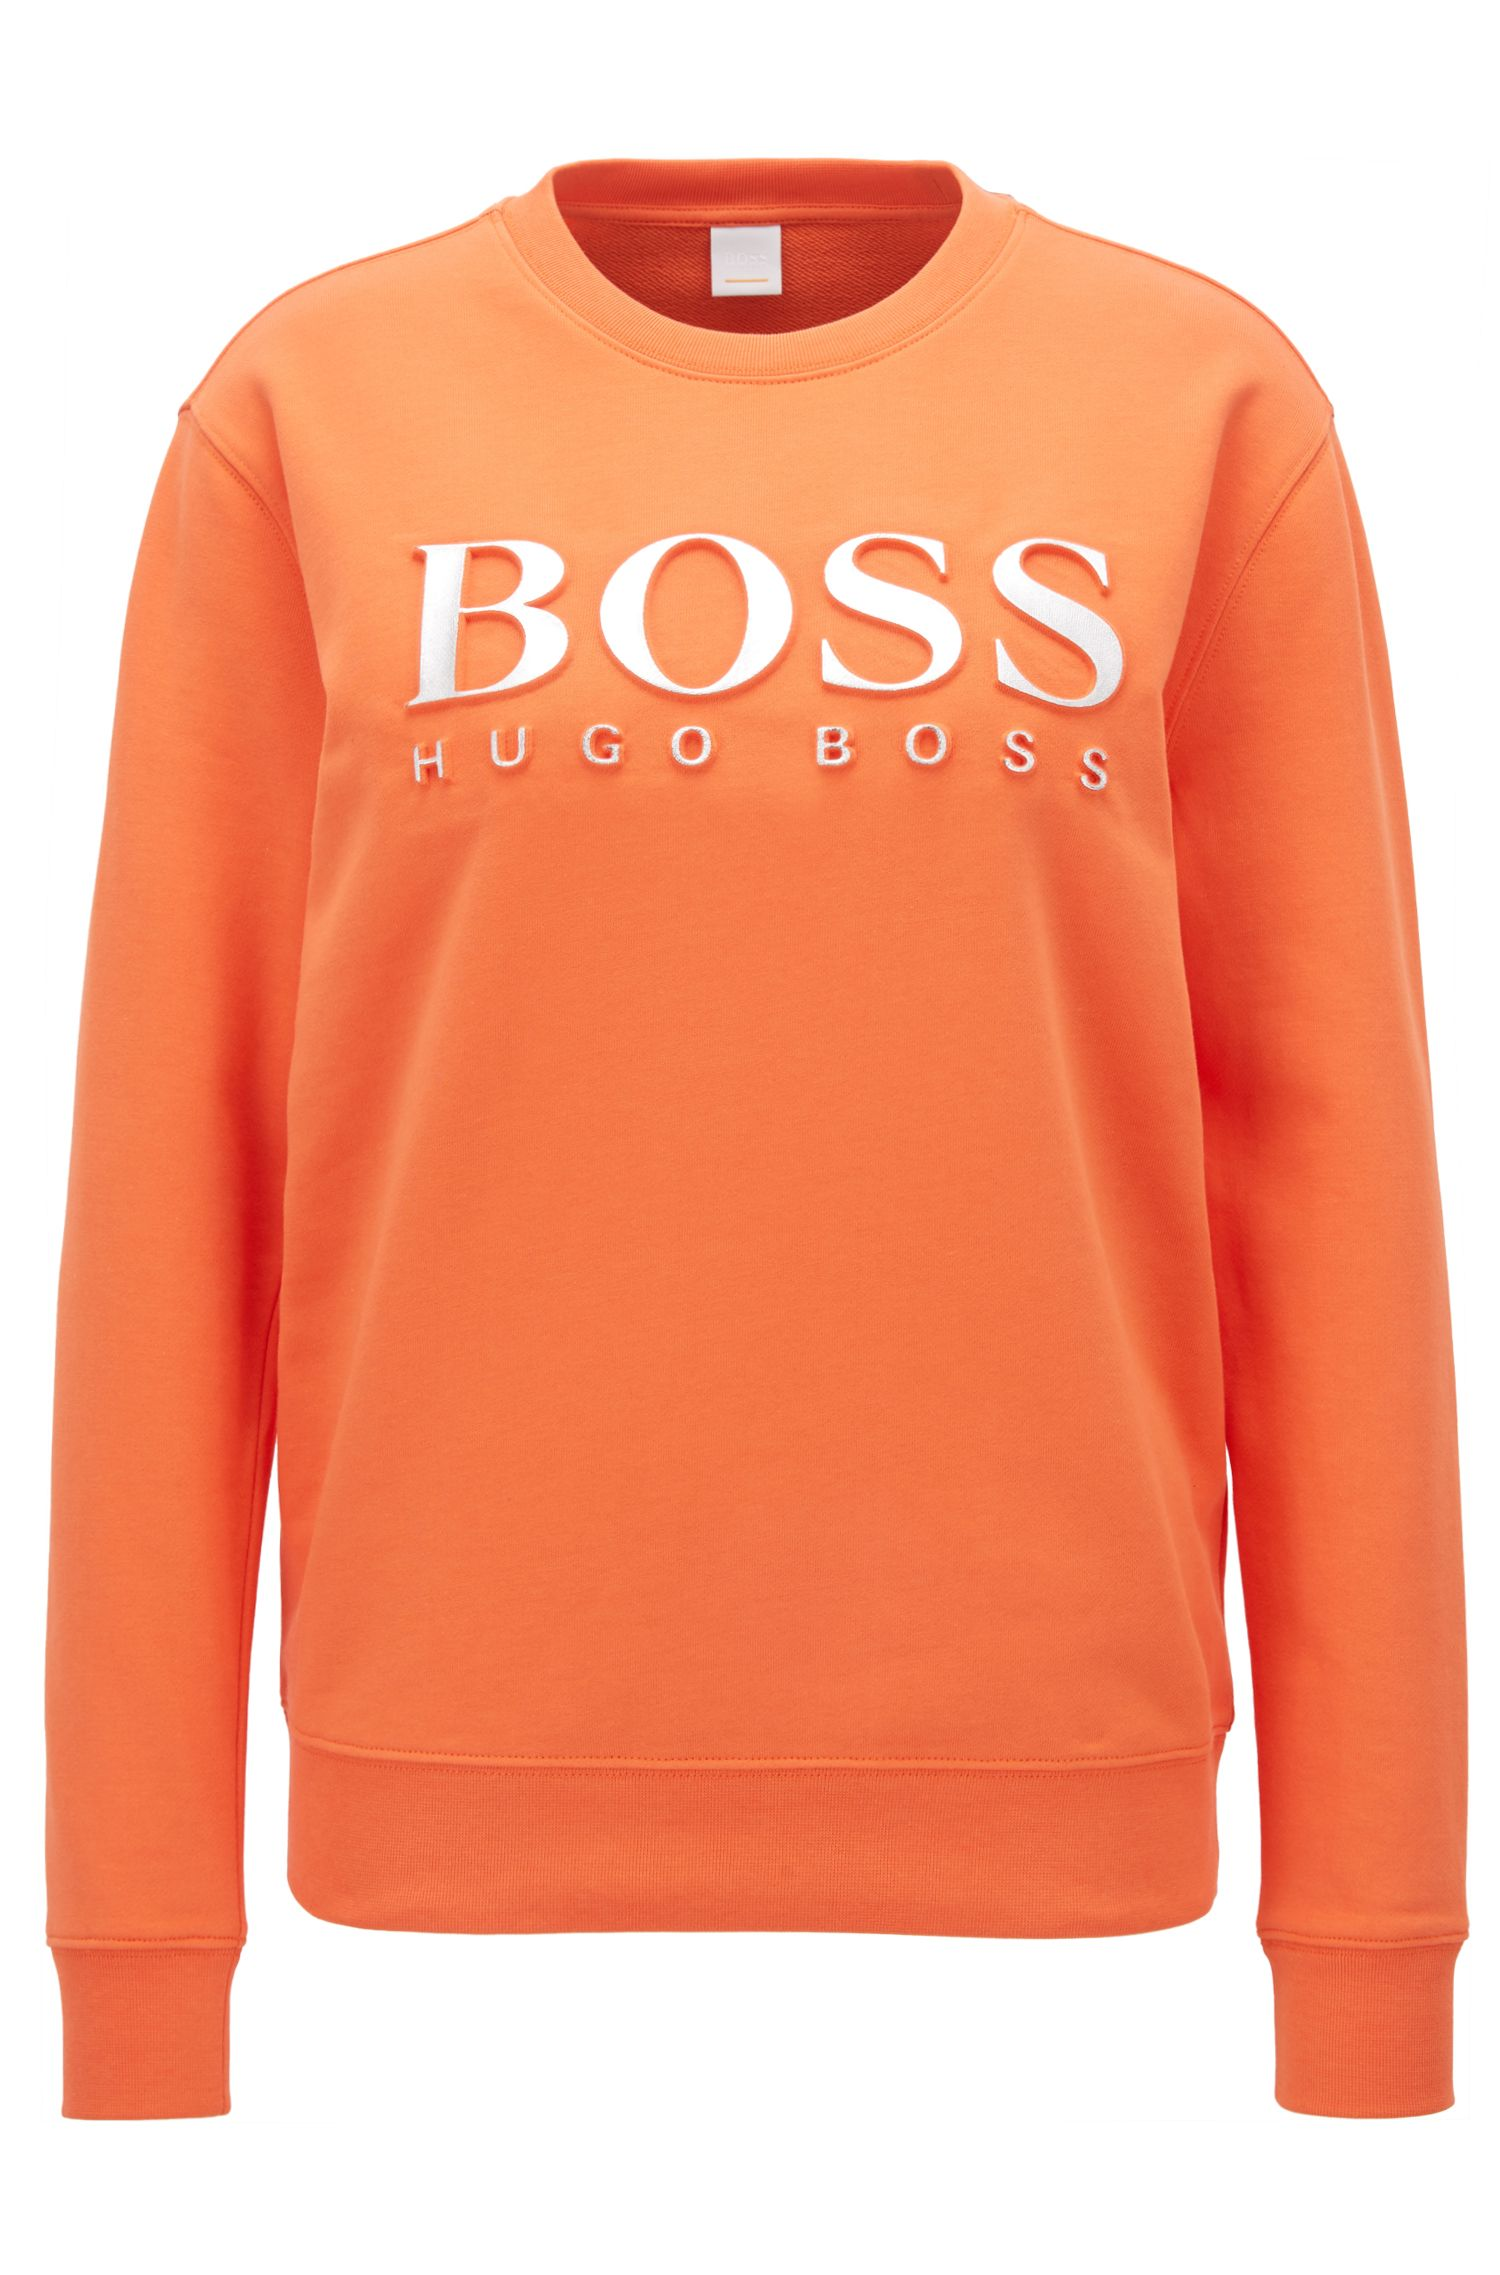 Sweatshirt aus Baumwoll-Terry mit 3D-Logo in Metallic-Optik, Orange